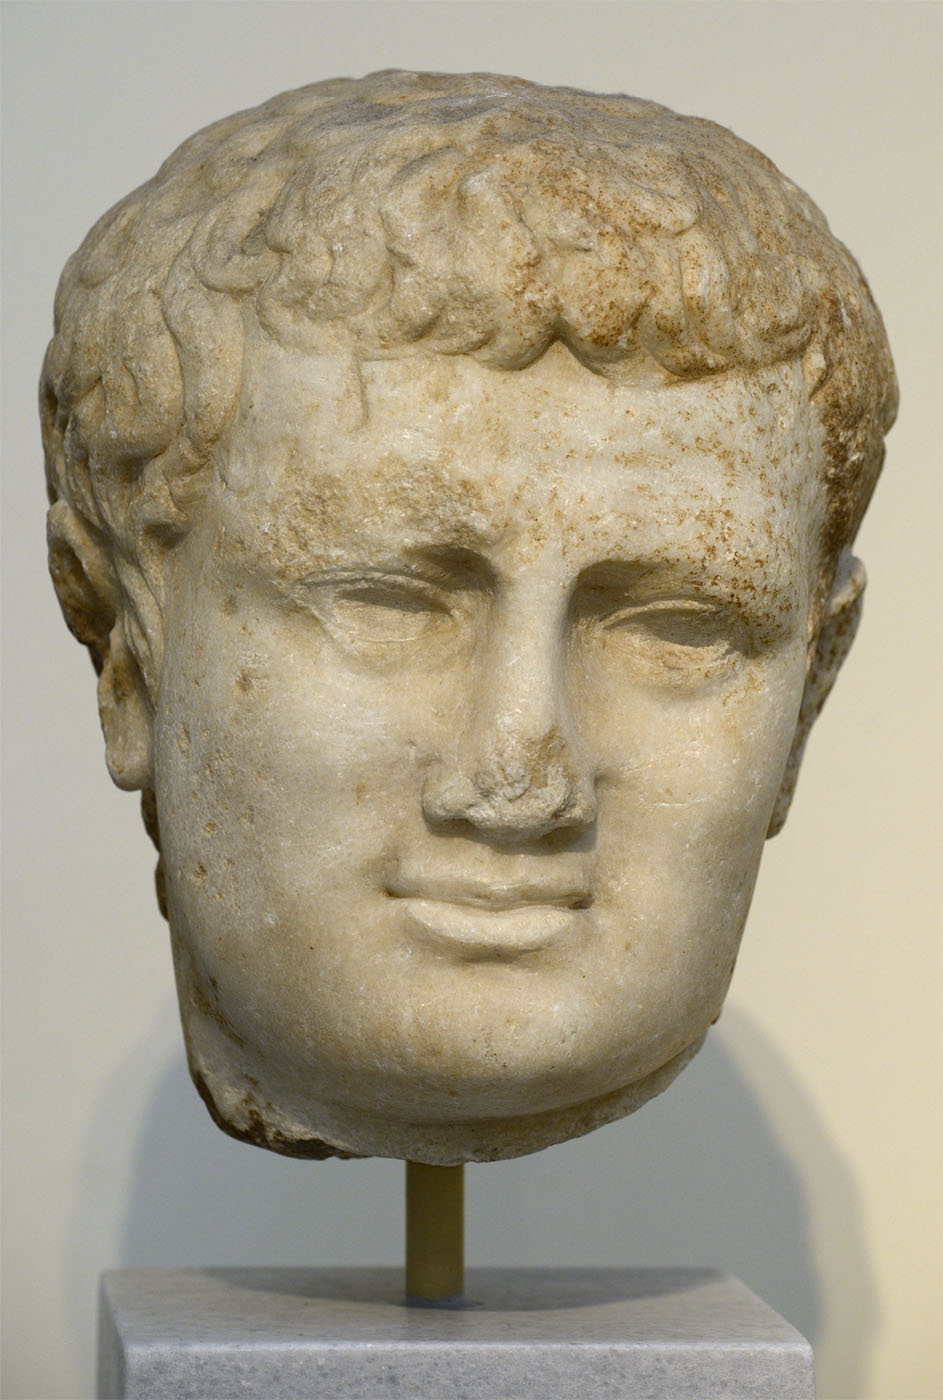 Portrait head of Titus. Pentelic marble. 79-81 CE. Inv. No. 348. Athens, National Archaeological Museum